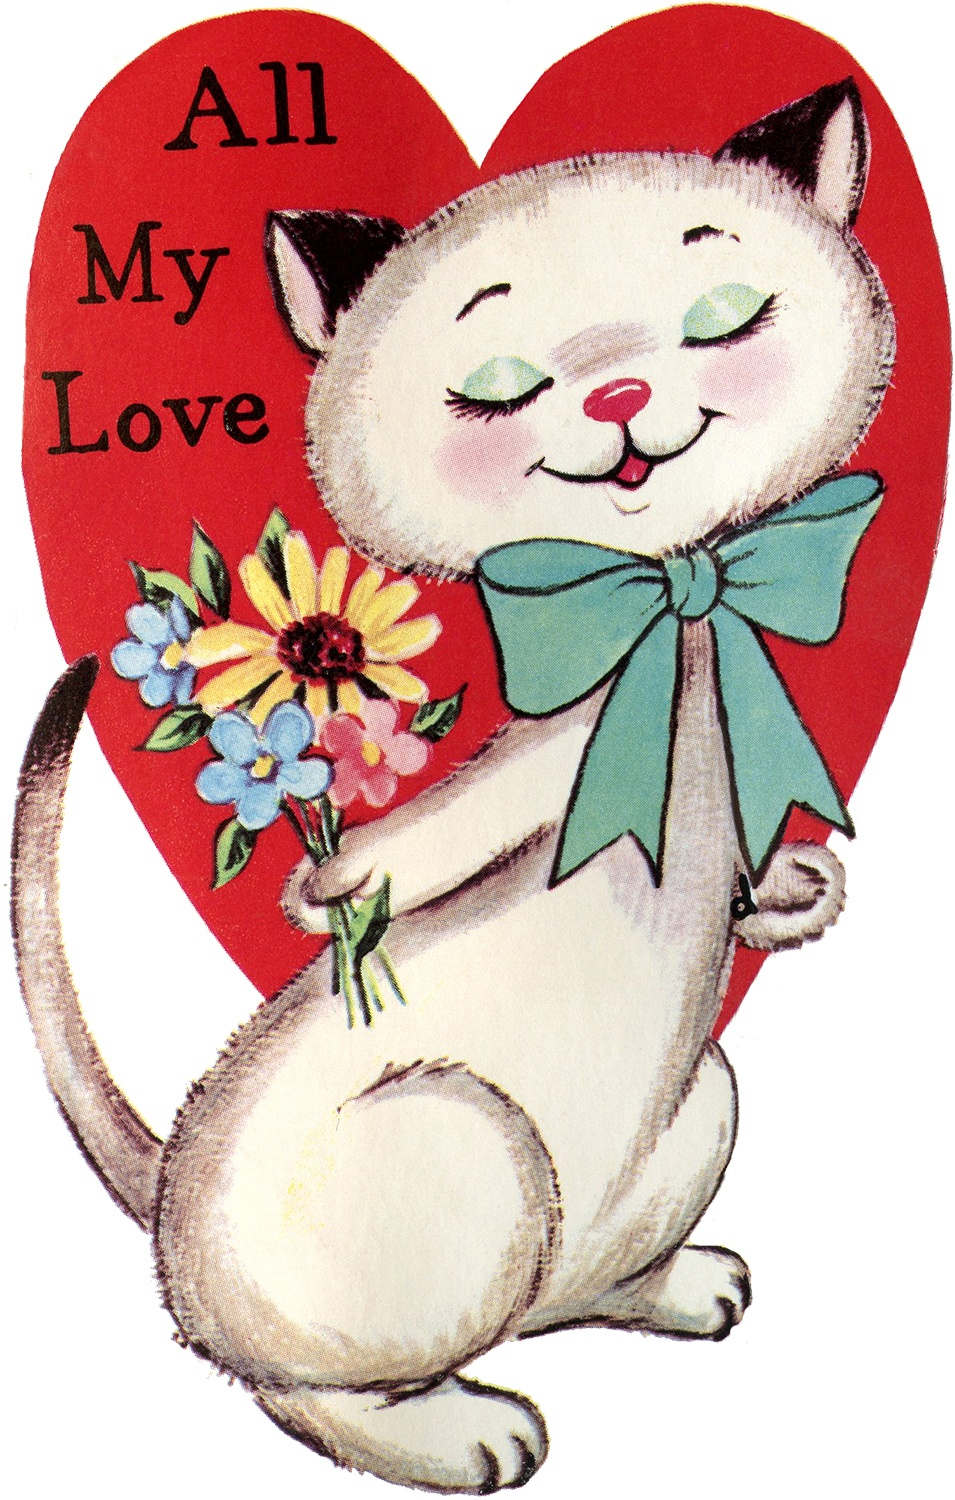 9 Retro Valentines With Animals! - The Graphics Fairy - Free Printable Vintage Valentine Pictures